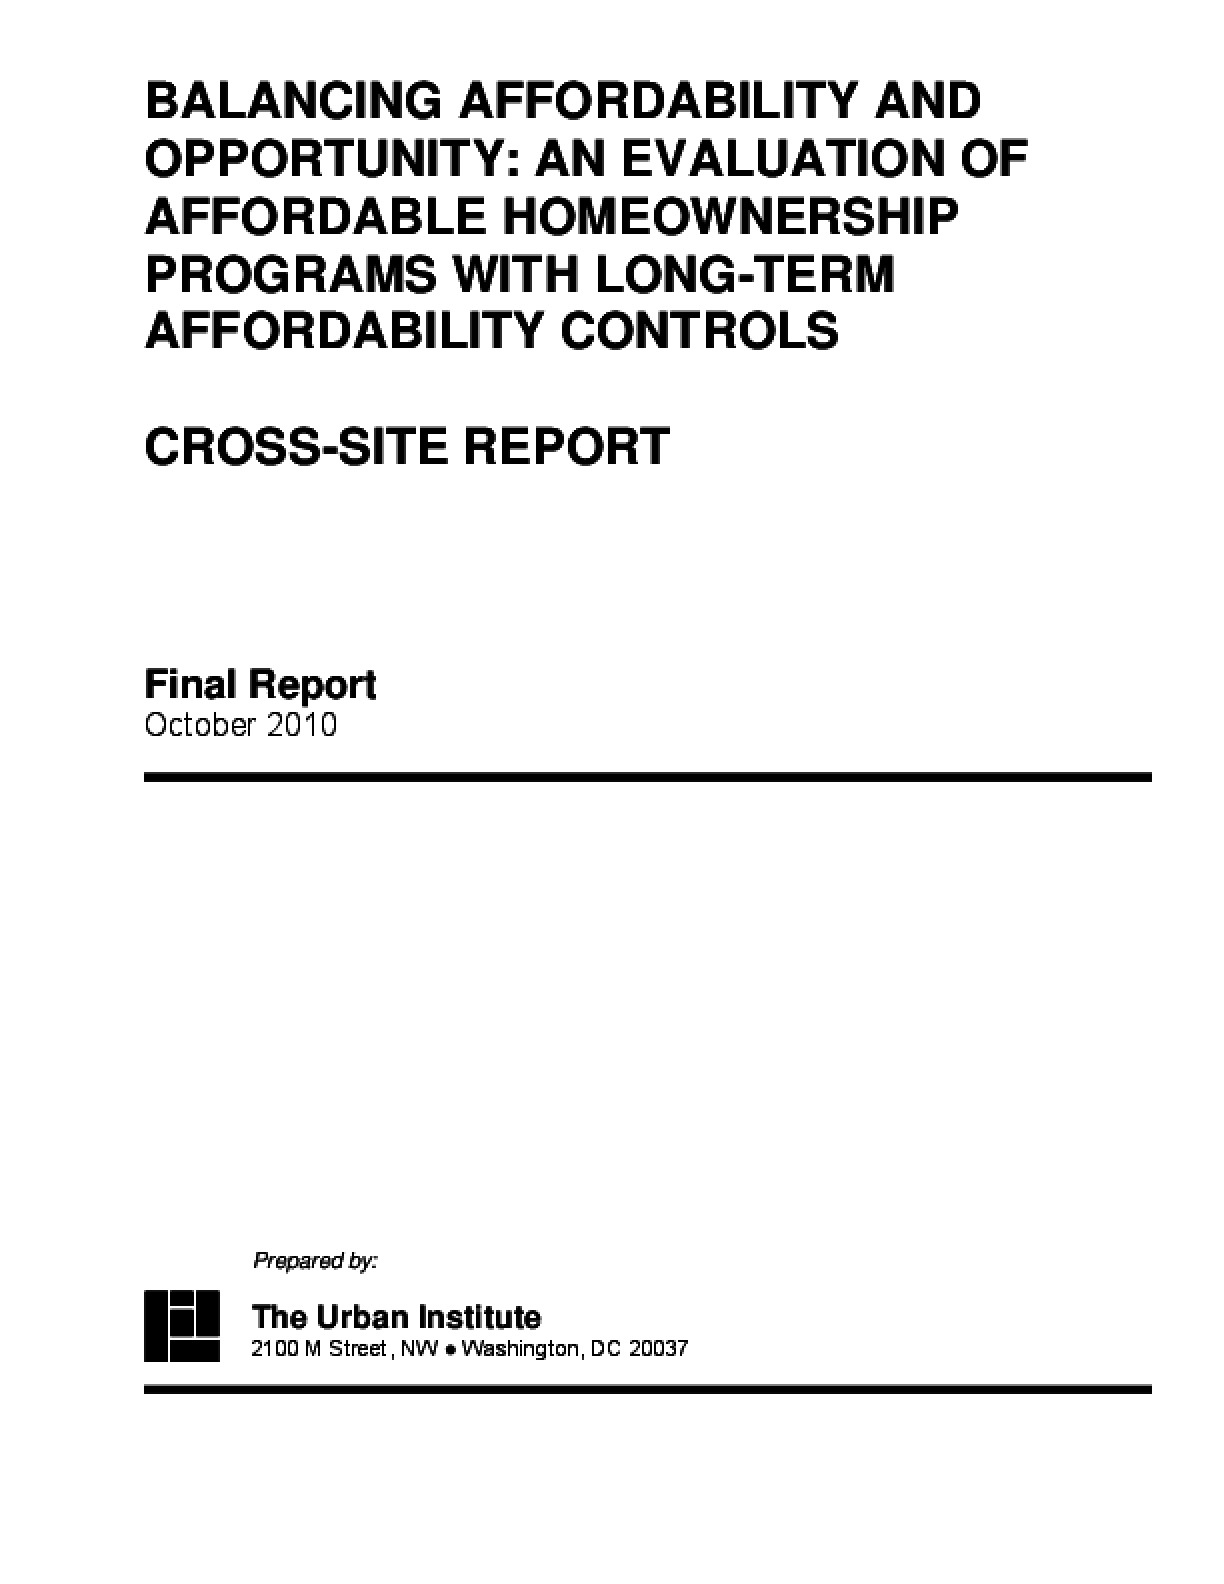 Balancing Affordability and Opportunity: An Evaluation of Affordable Homeownership Programs With Long-Term Affordability Controls